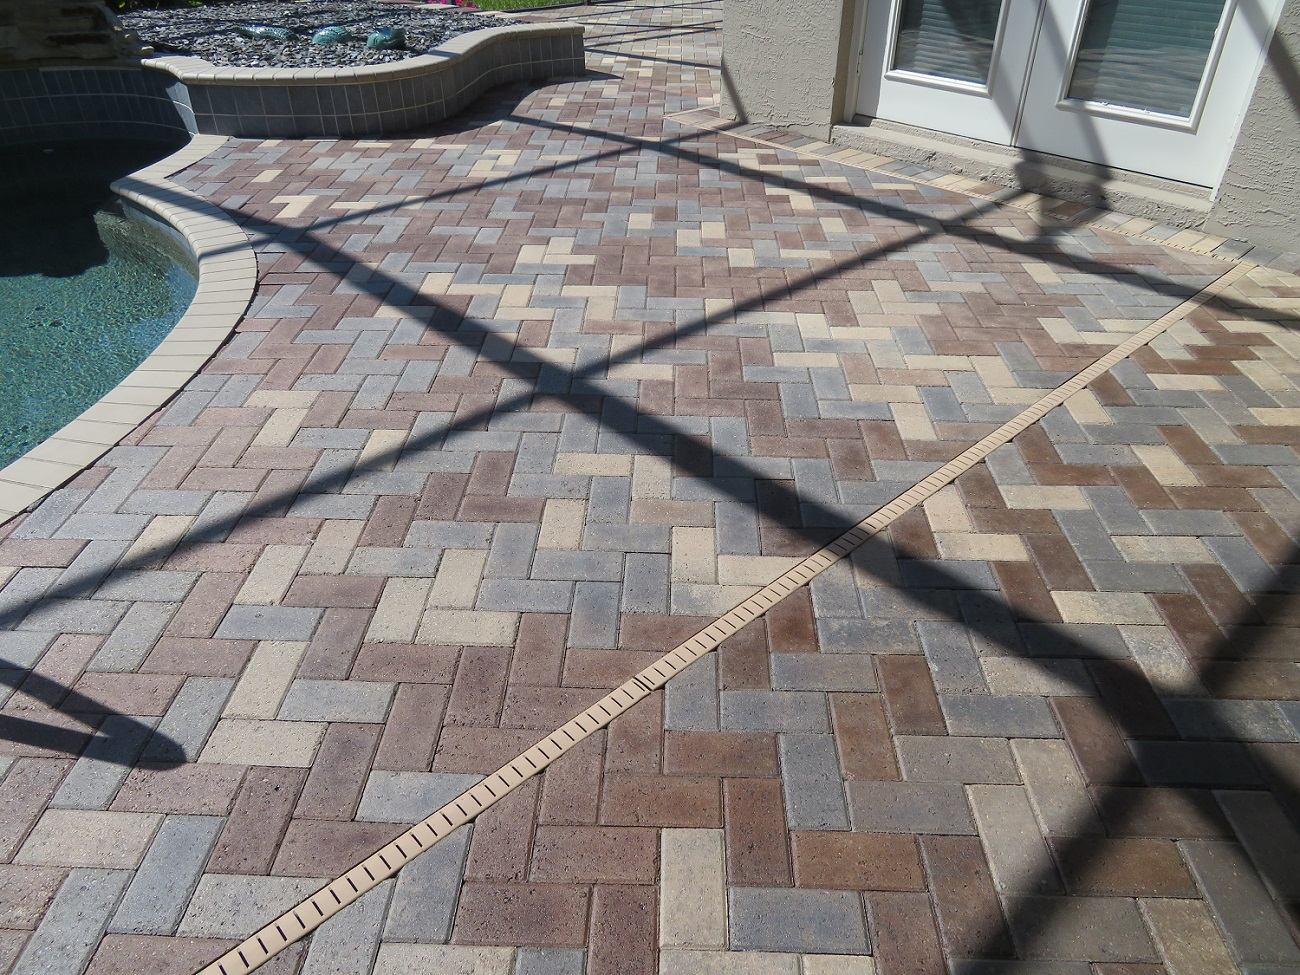 Staining Pavers Different Colors